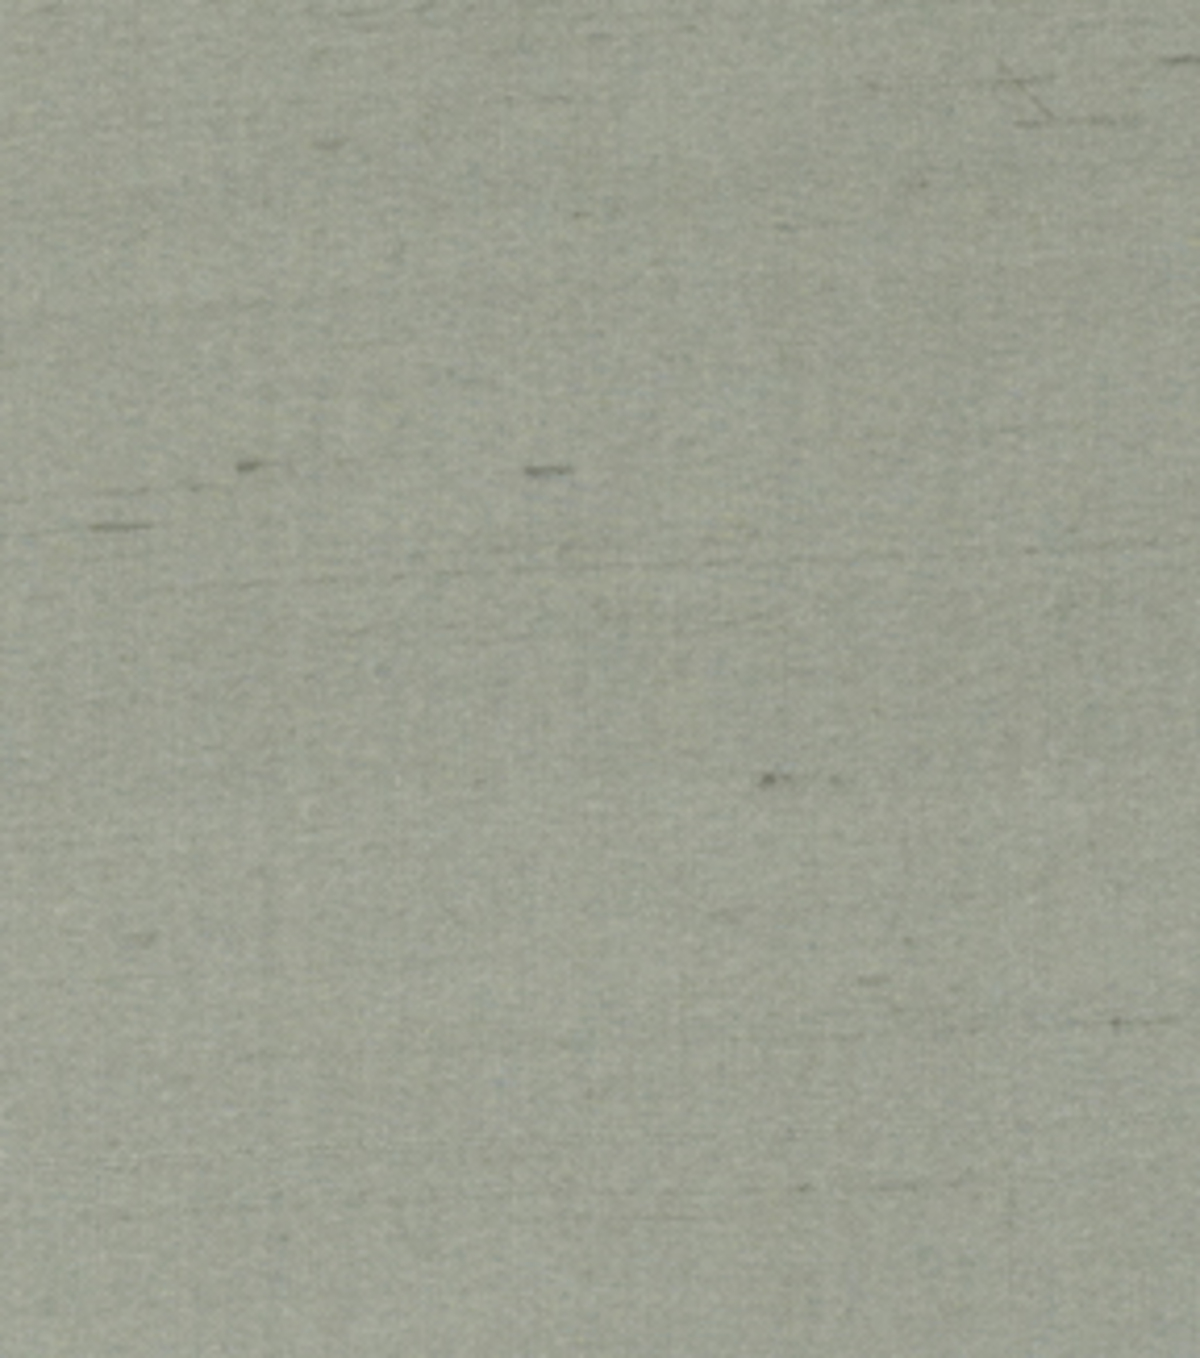 Home Decor 8\u0022x8\u0022 Fabric Swatch-Signature Series Duppioni Silk Eucalyptus